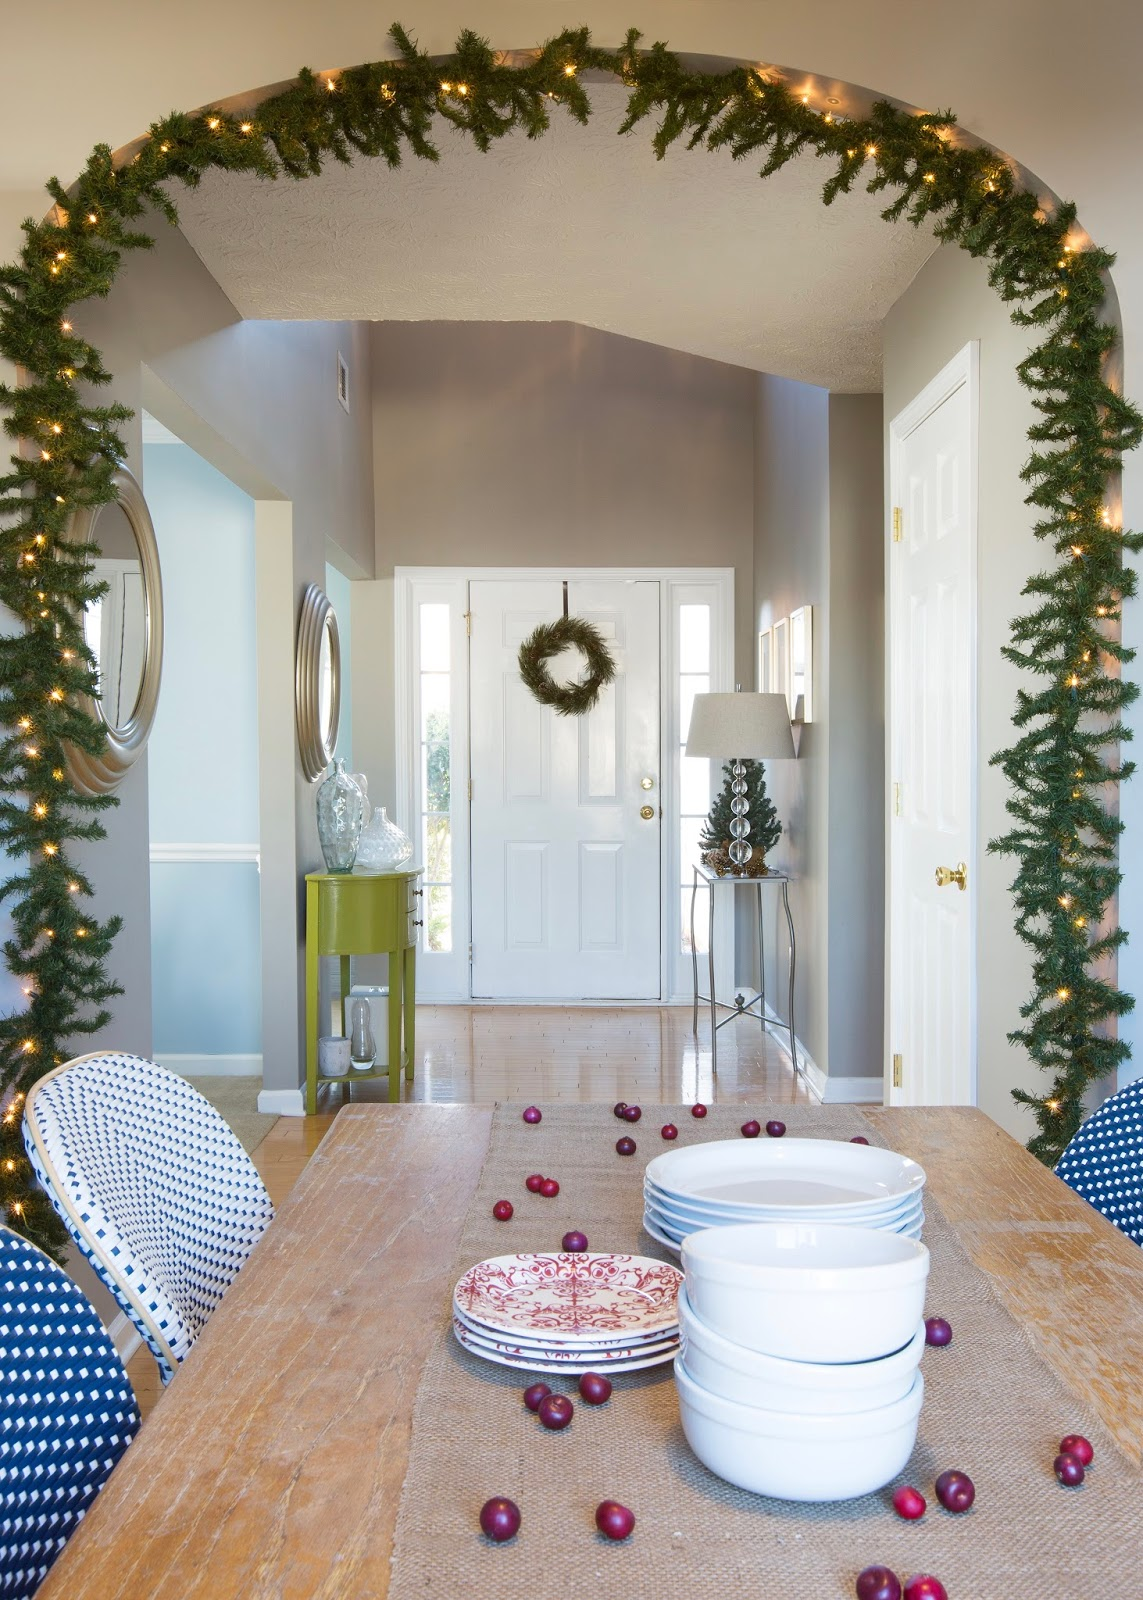 Christmas At Designers Homes Across America Stylish Spaces - Designers homes